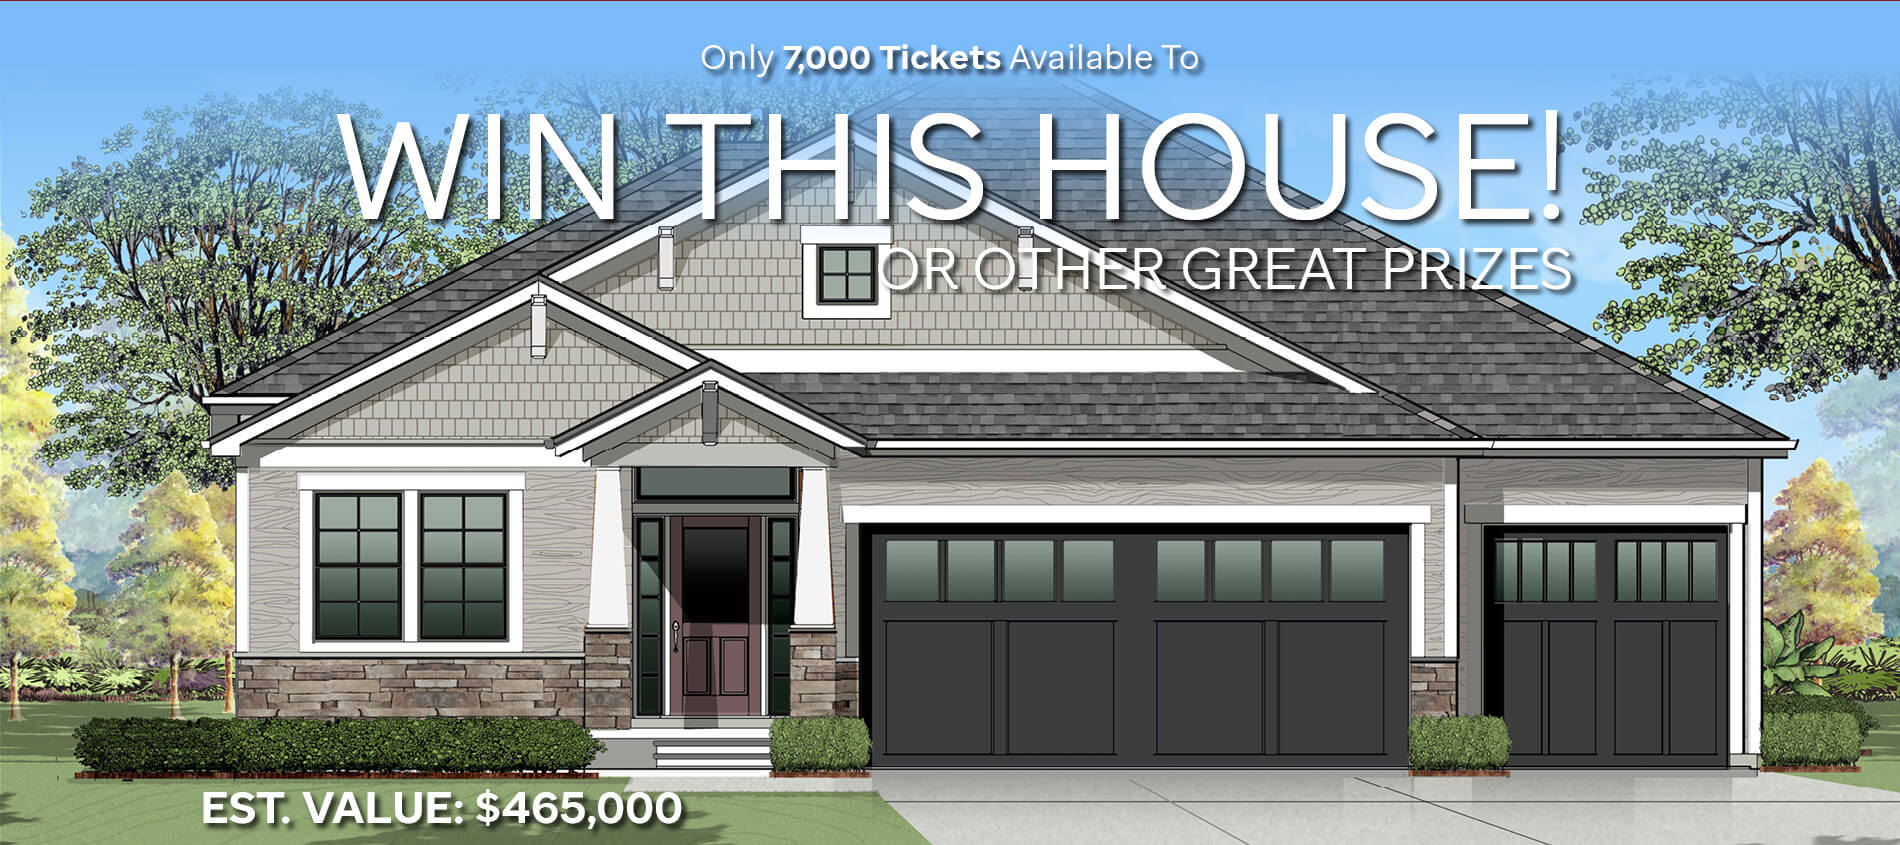 Only 7000 tickets available to win this house or other great prizes!